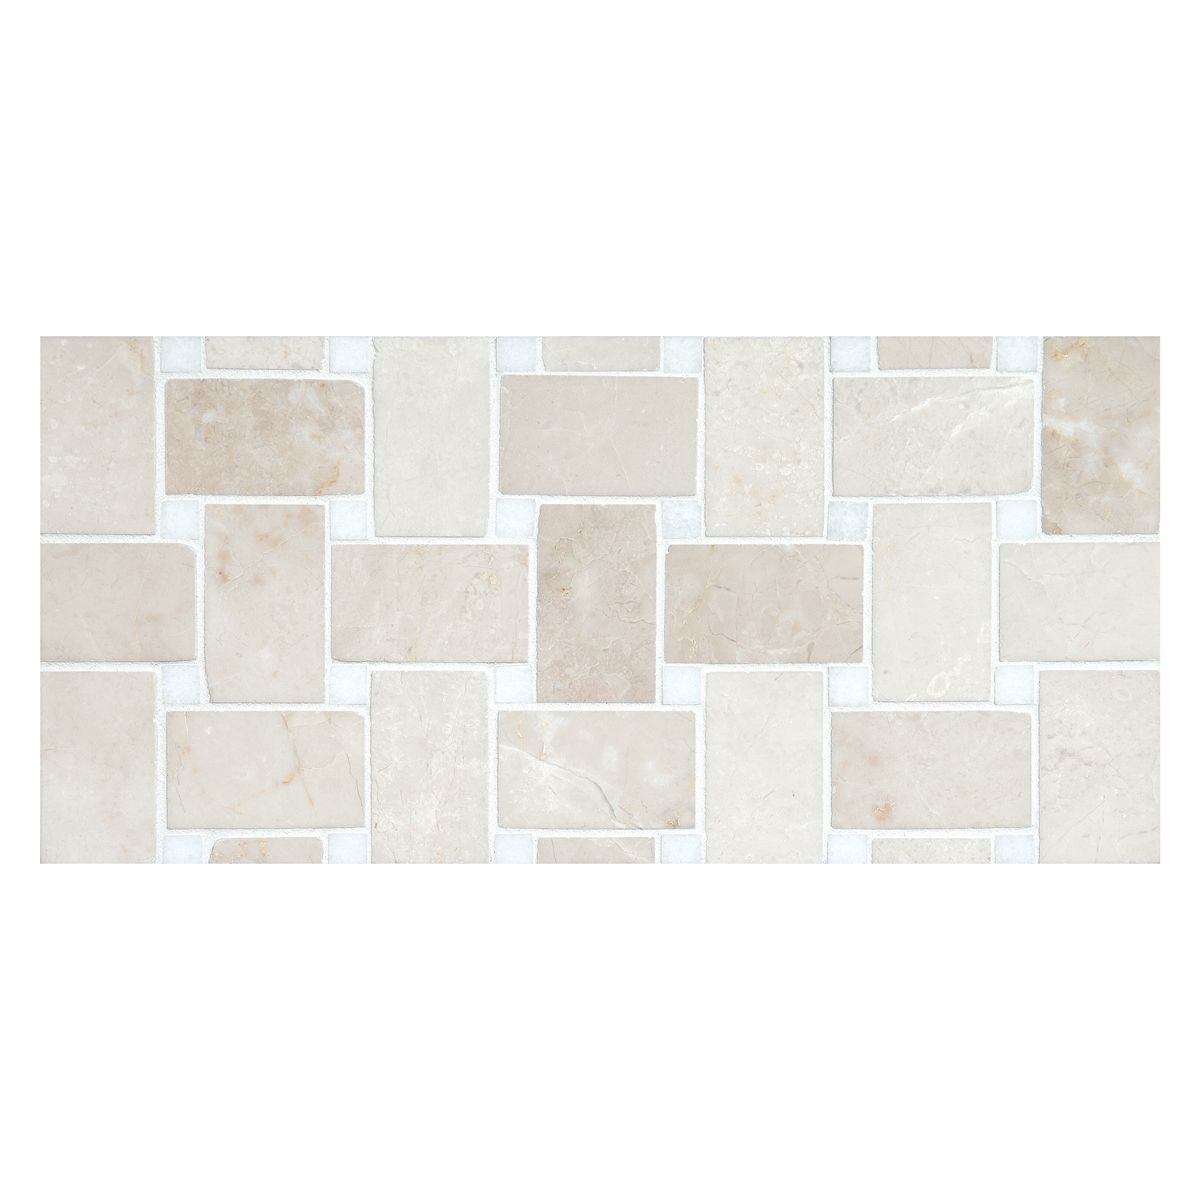 Complete Tile Collection Basketweave Mosaic Mi Color Bourges Beige With Thos Dots Polished